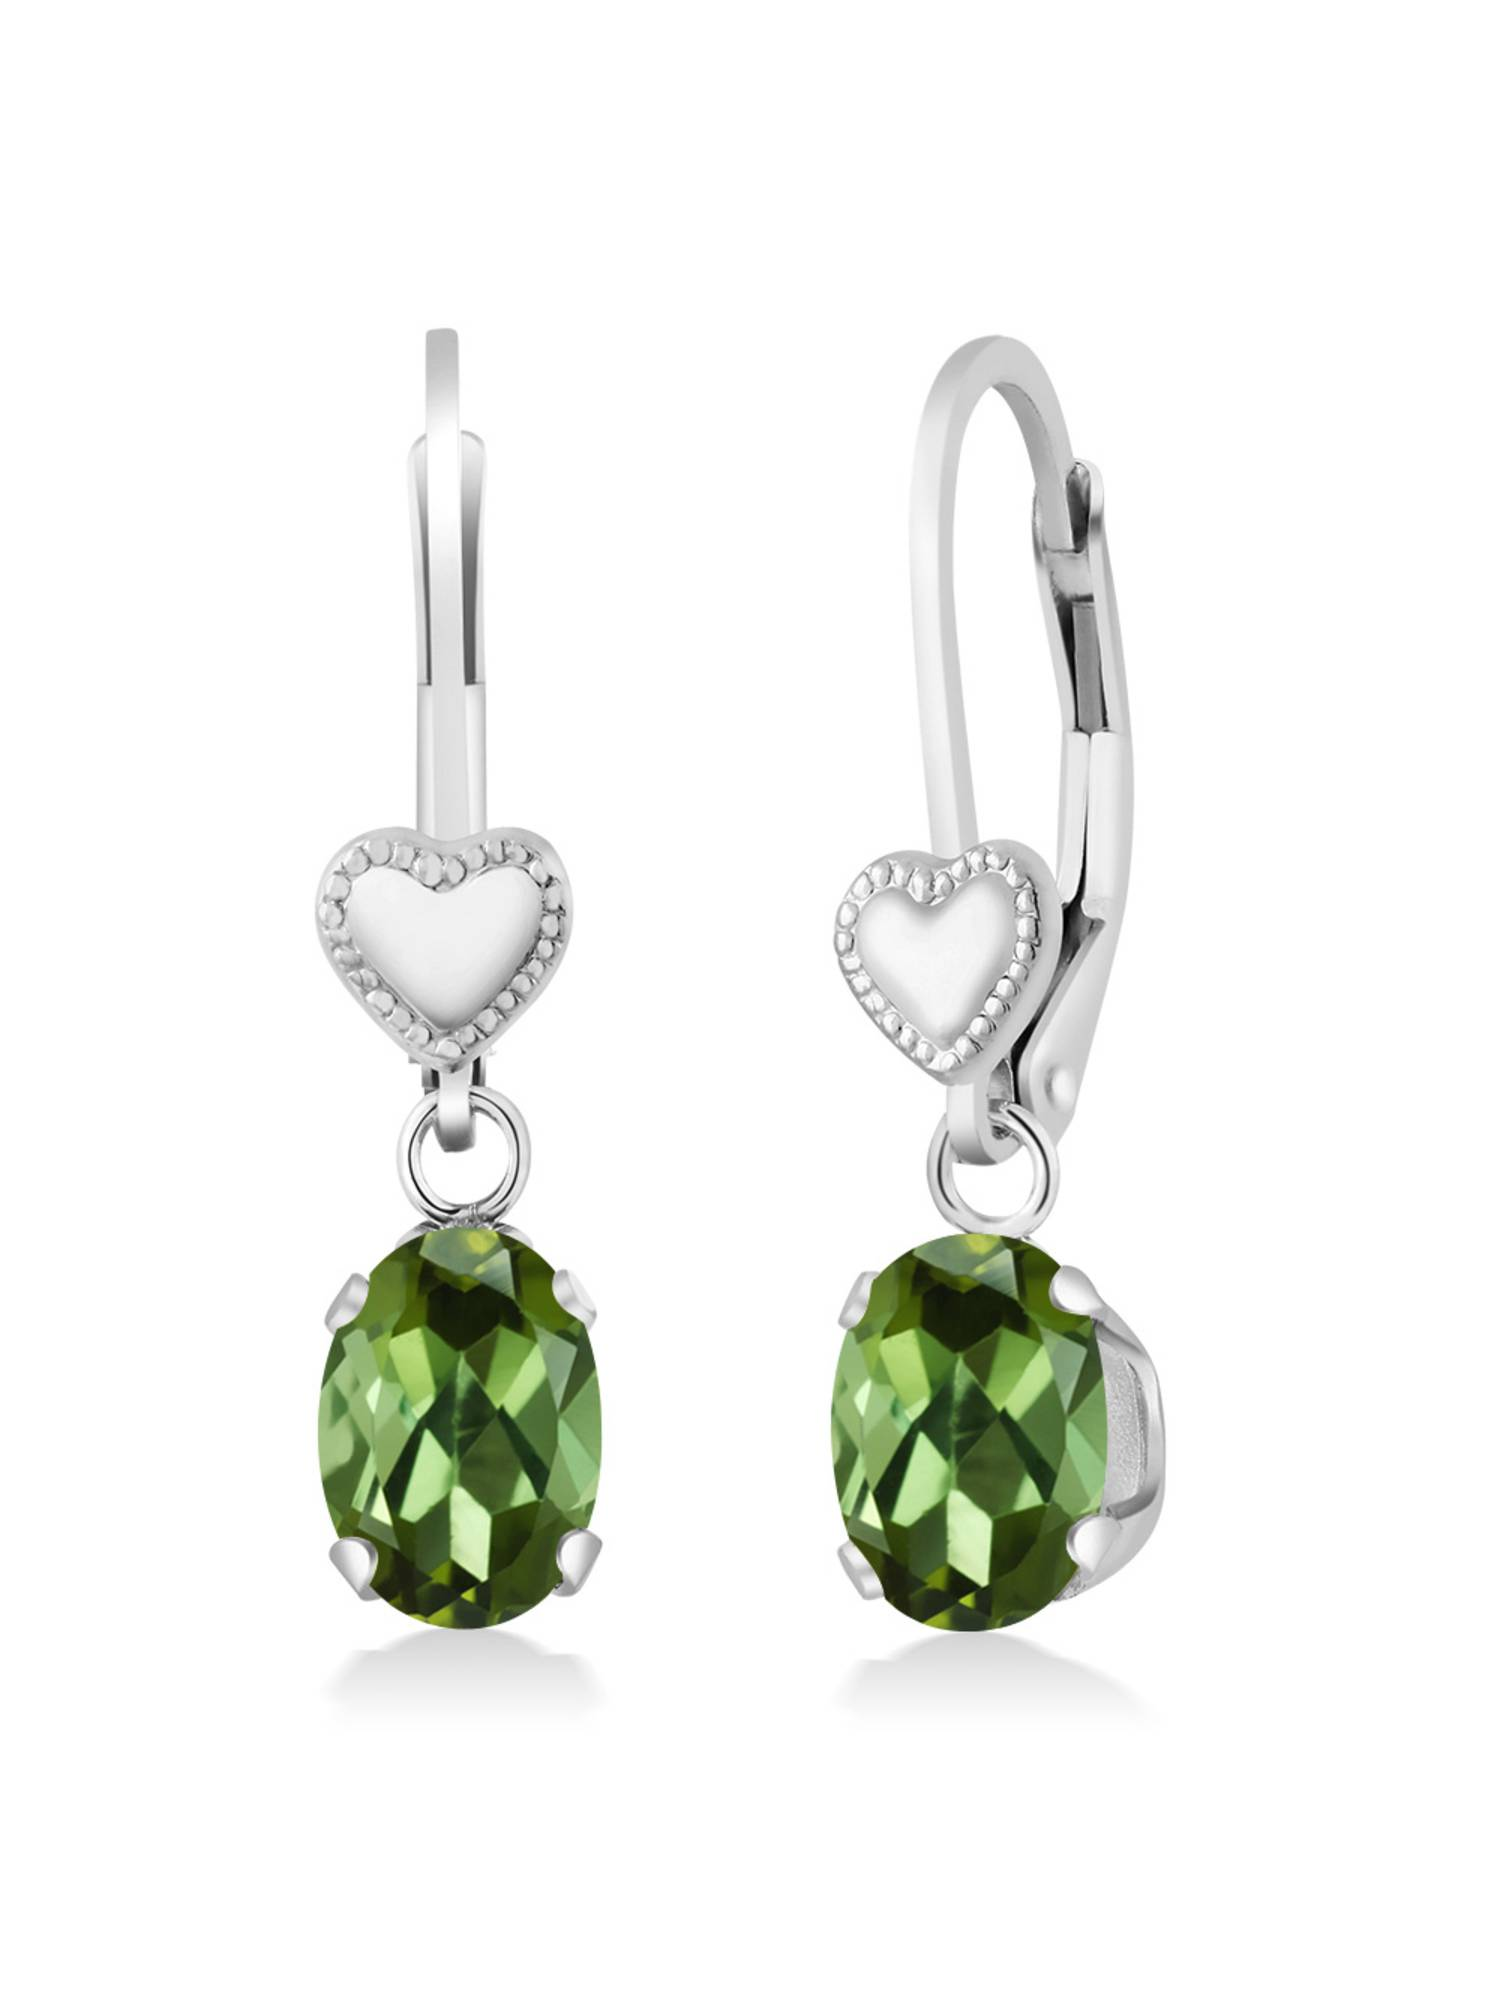 1.70 Ct Oval Green Tourmaline 925 Sterling Silver Earrings by